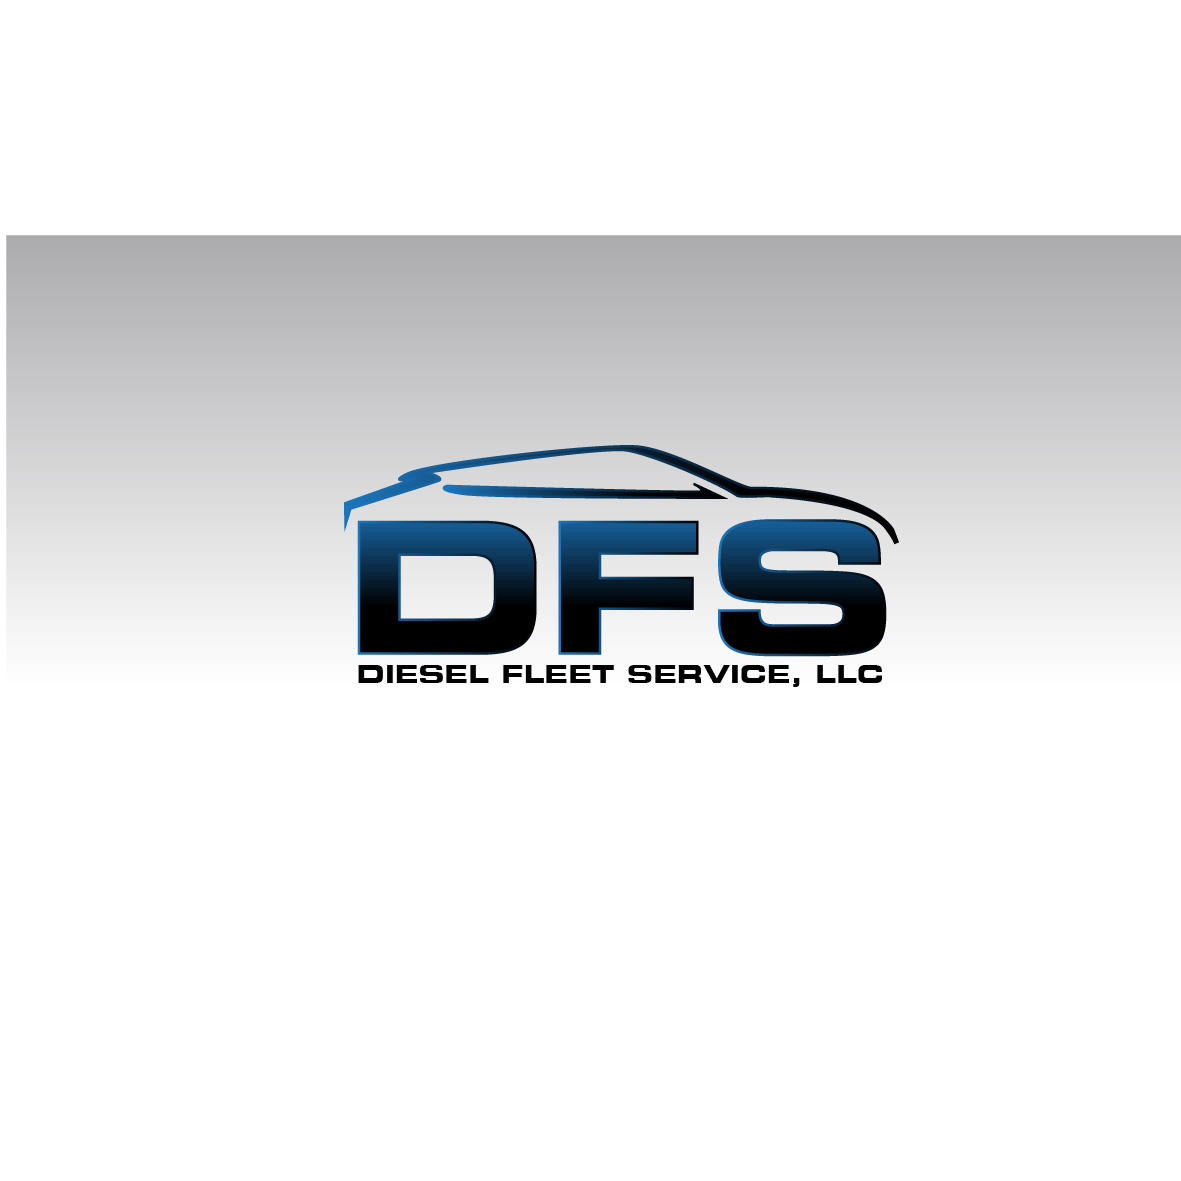 Logo Design by Robert Engi - Entry No. 22 in the Logo Design Contest Artistic Logo Design for Diesel Fleet Service, LLC.